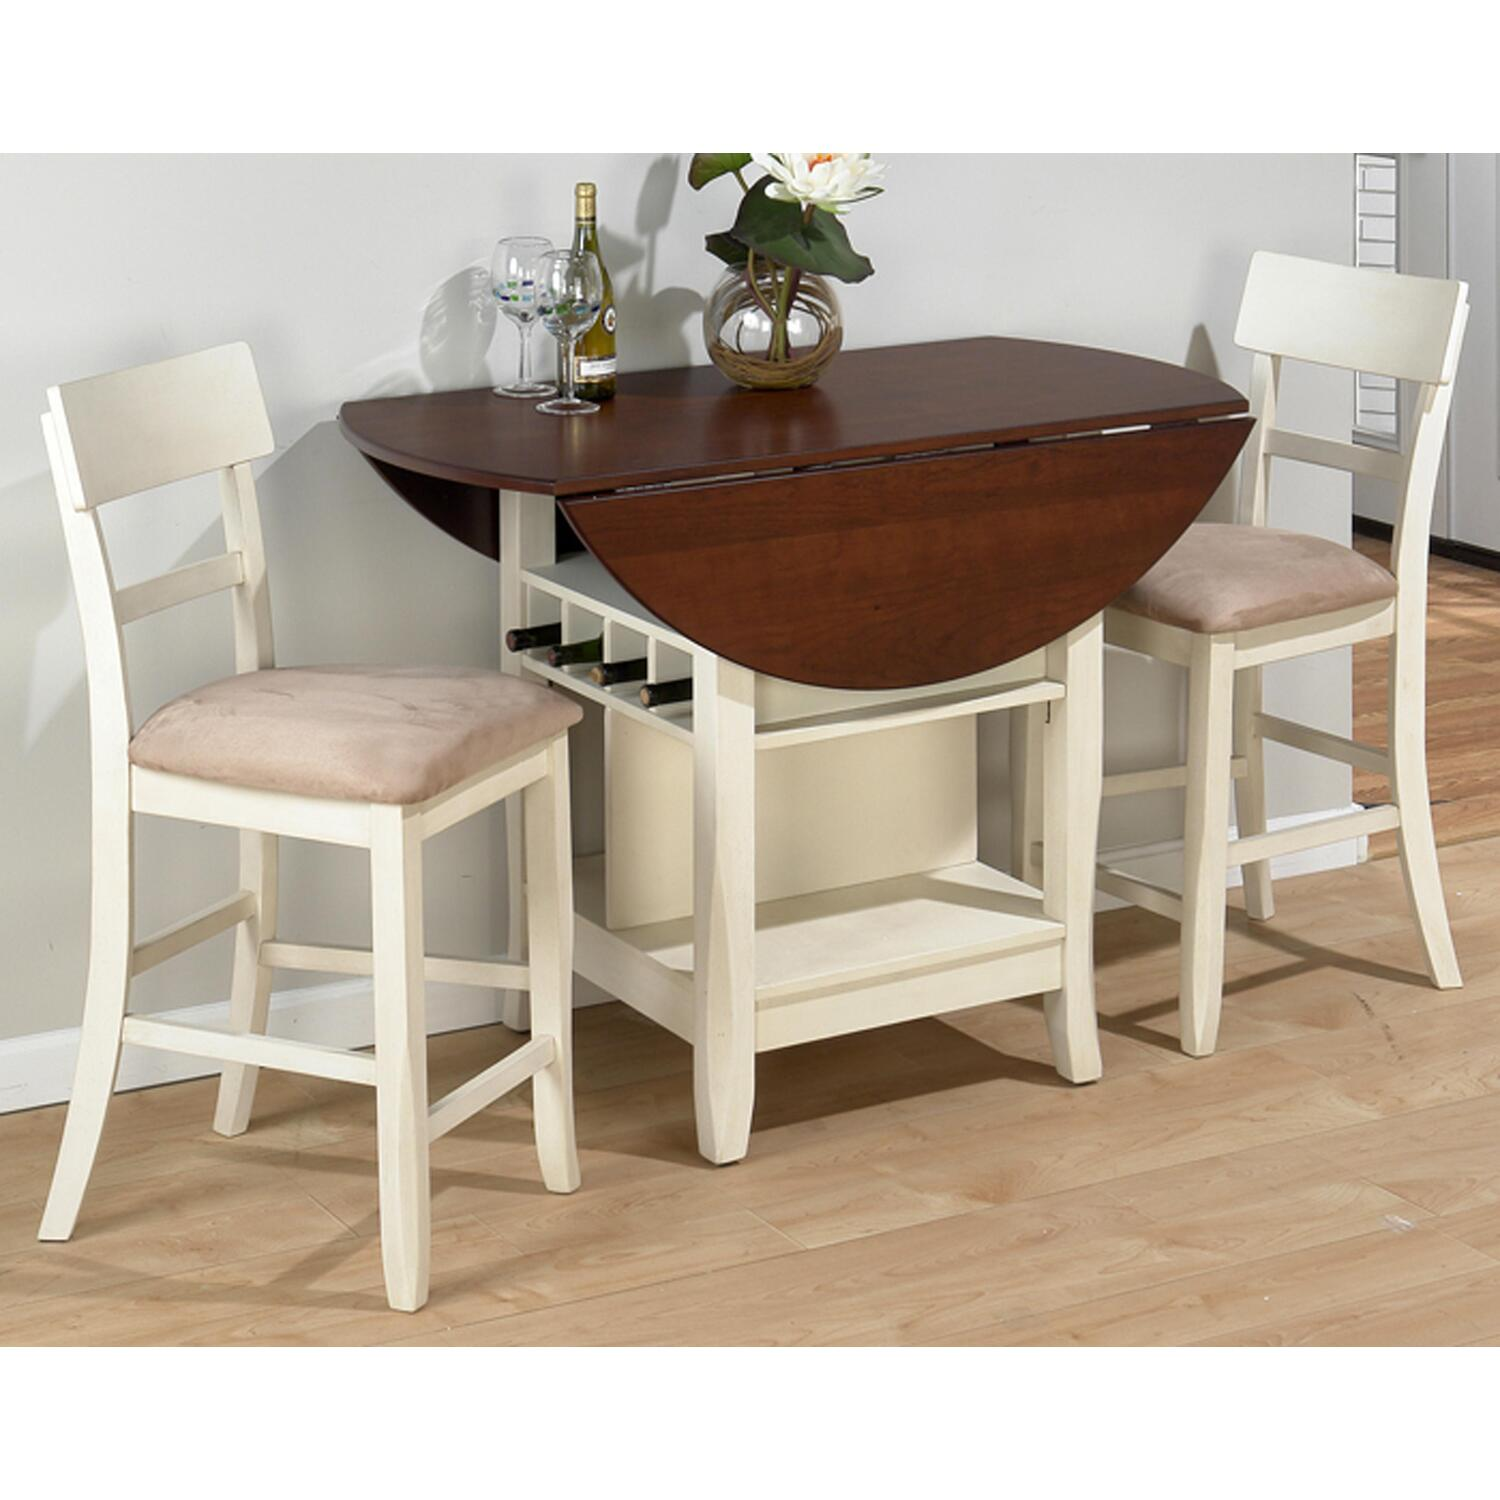 dining table drop leaf dining table chairs small kitchen table Paper Lantern Wedding Decorations